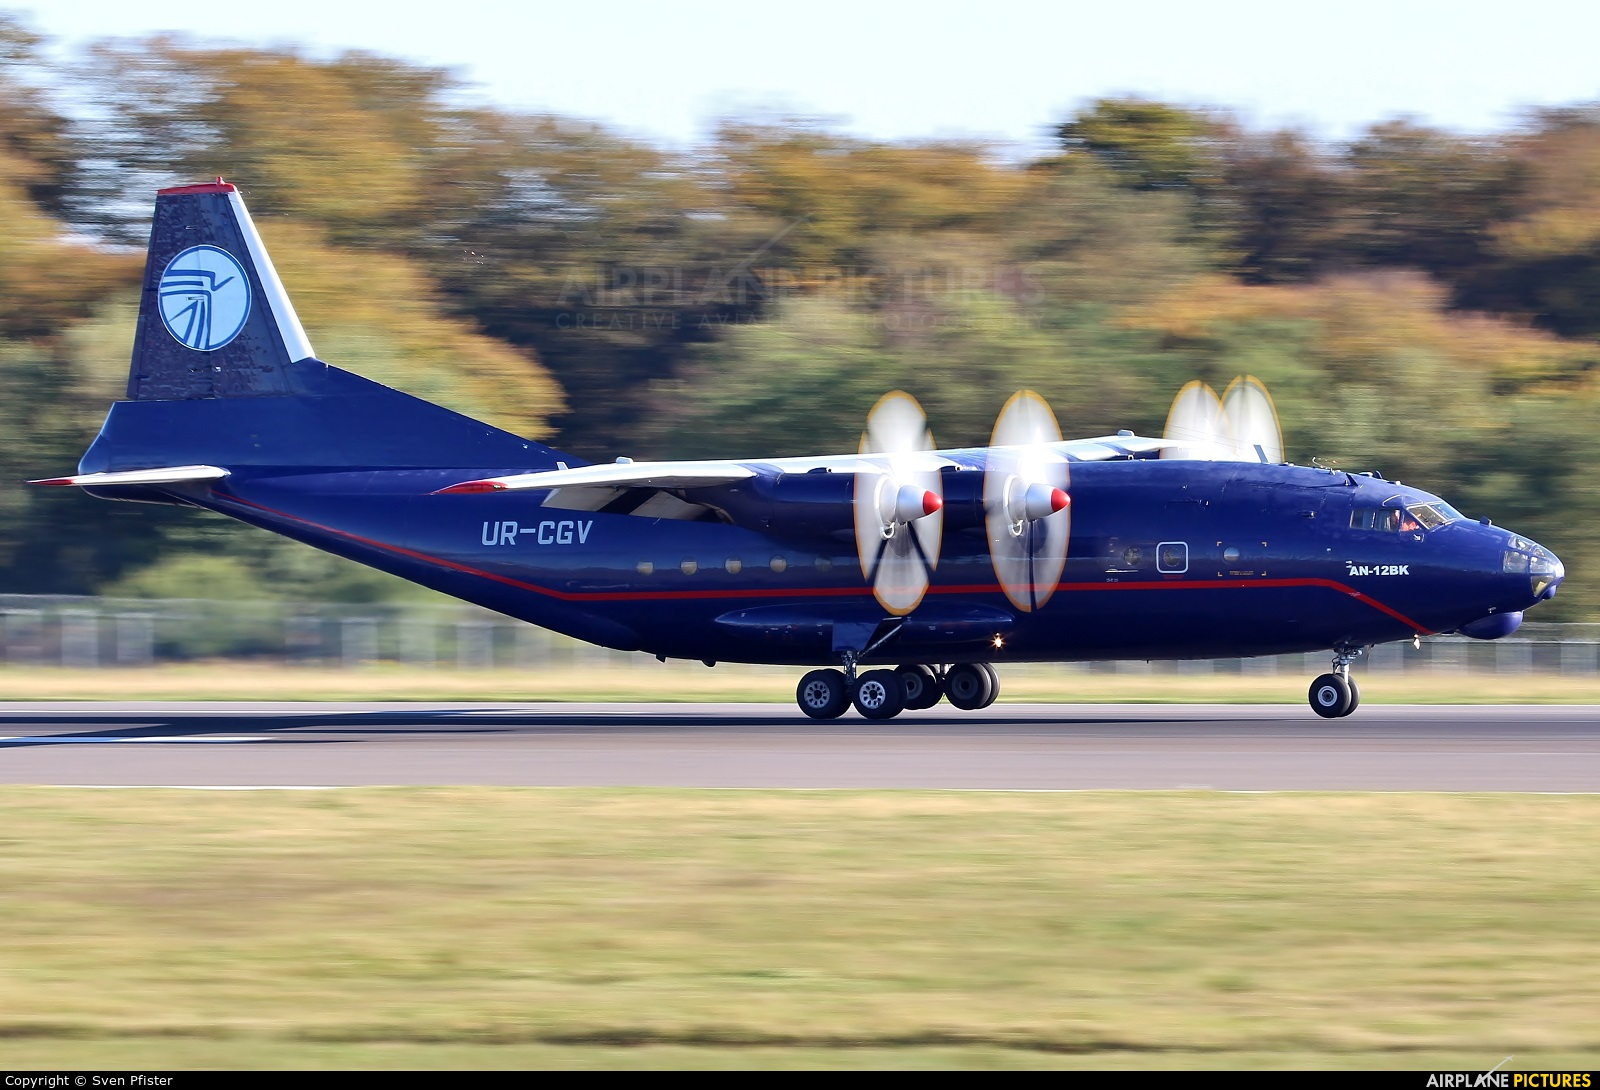 Ukraine Air Alliance UR-CGV aircraft at Luxembourg - Findel